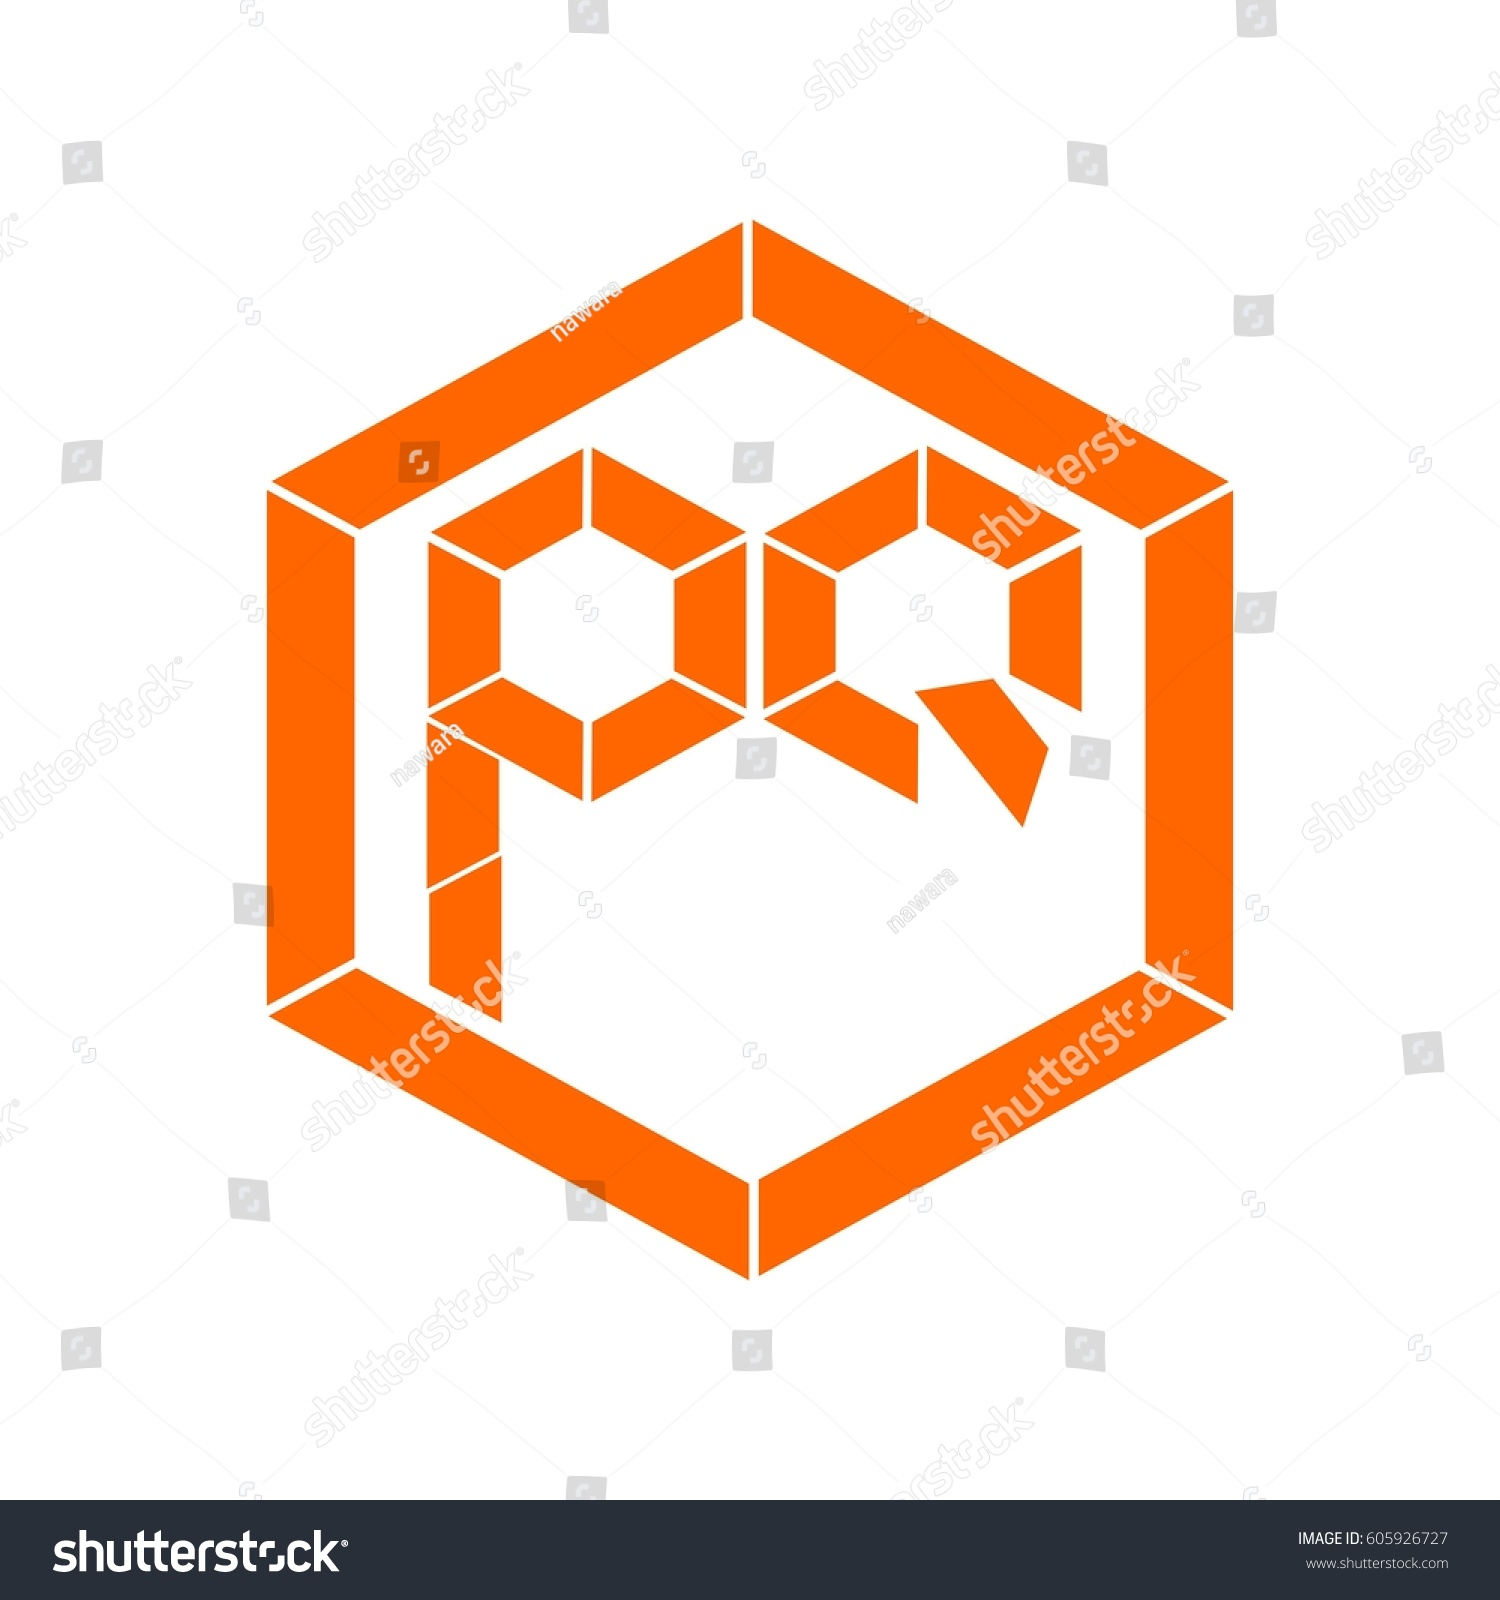 letter P,Q orange color logo vector